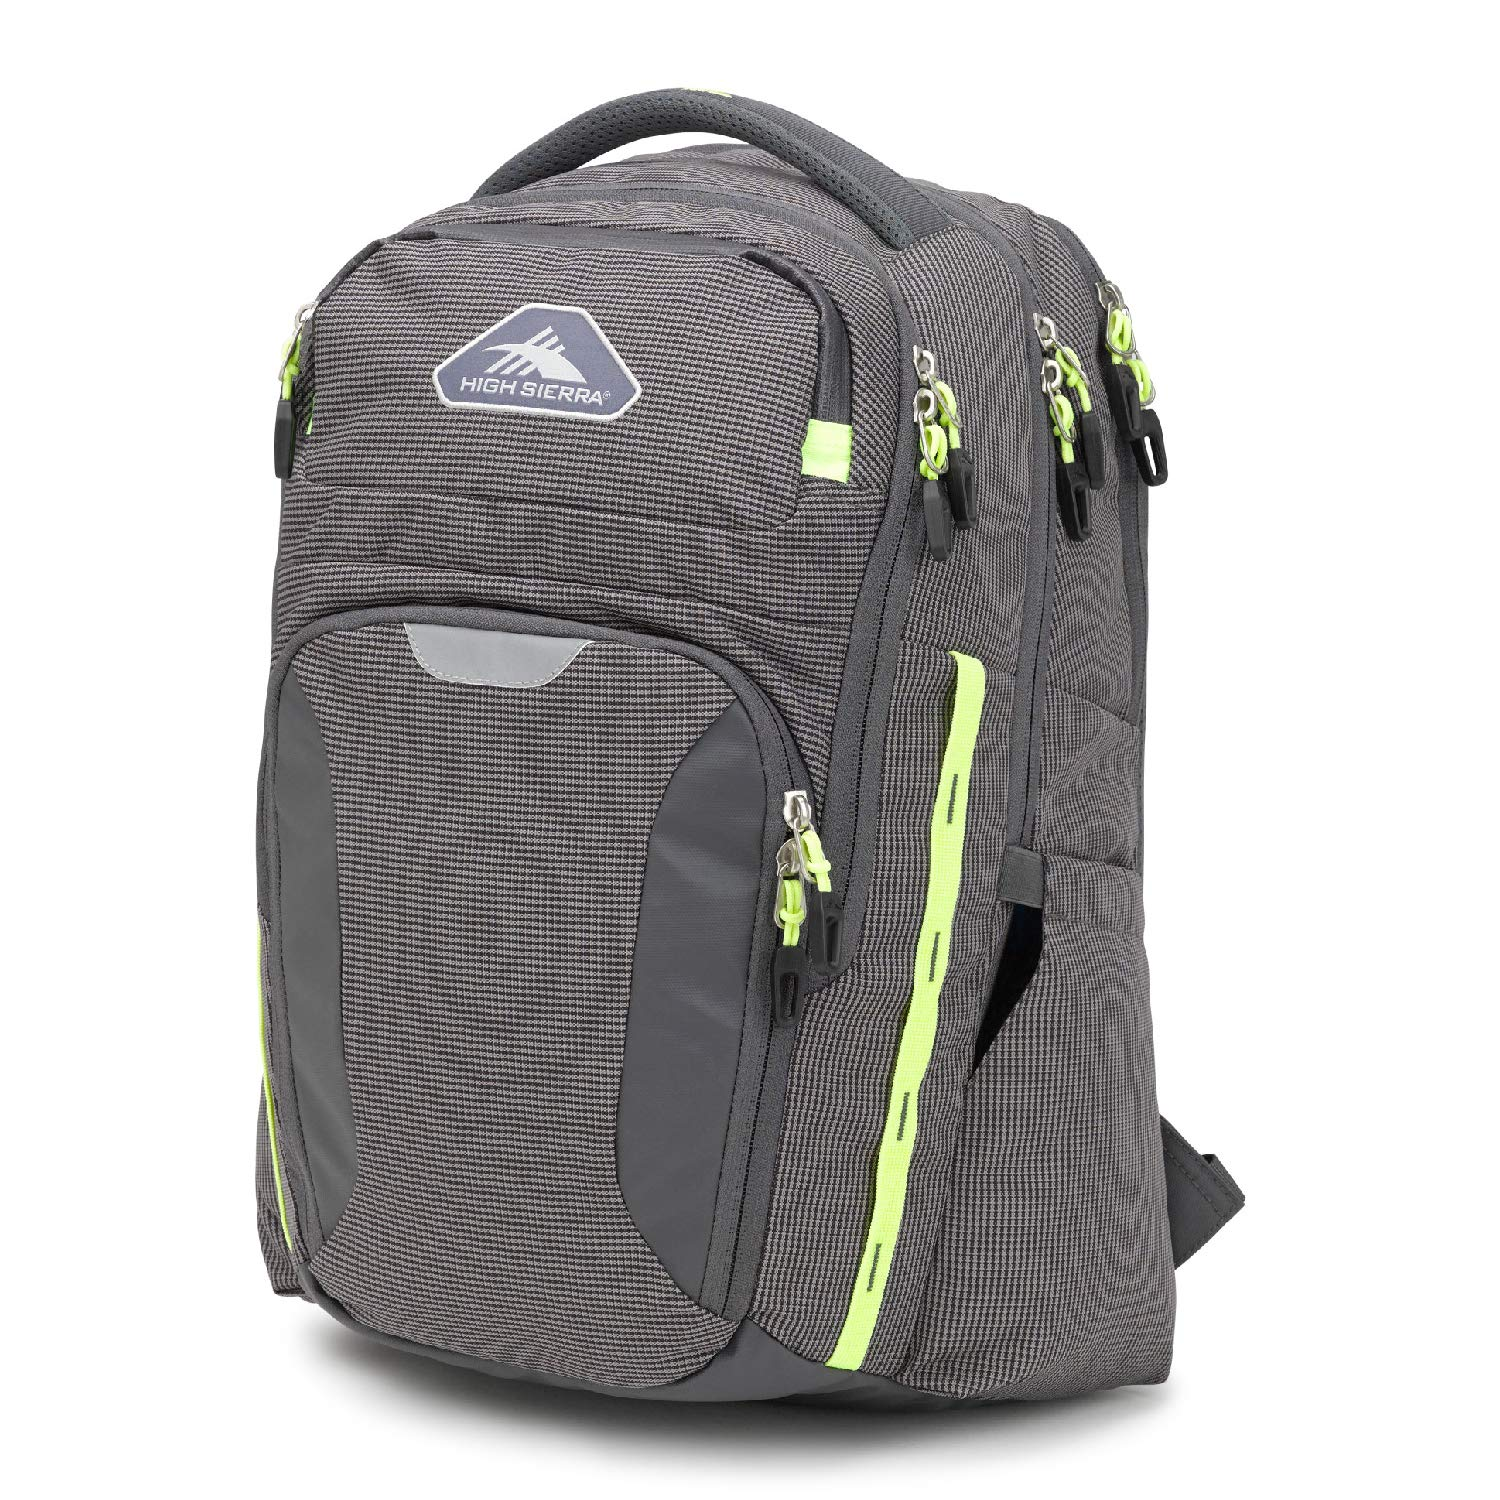 High Sierra Backpack Compartment Perfect